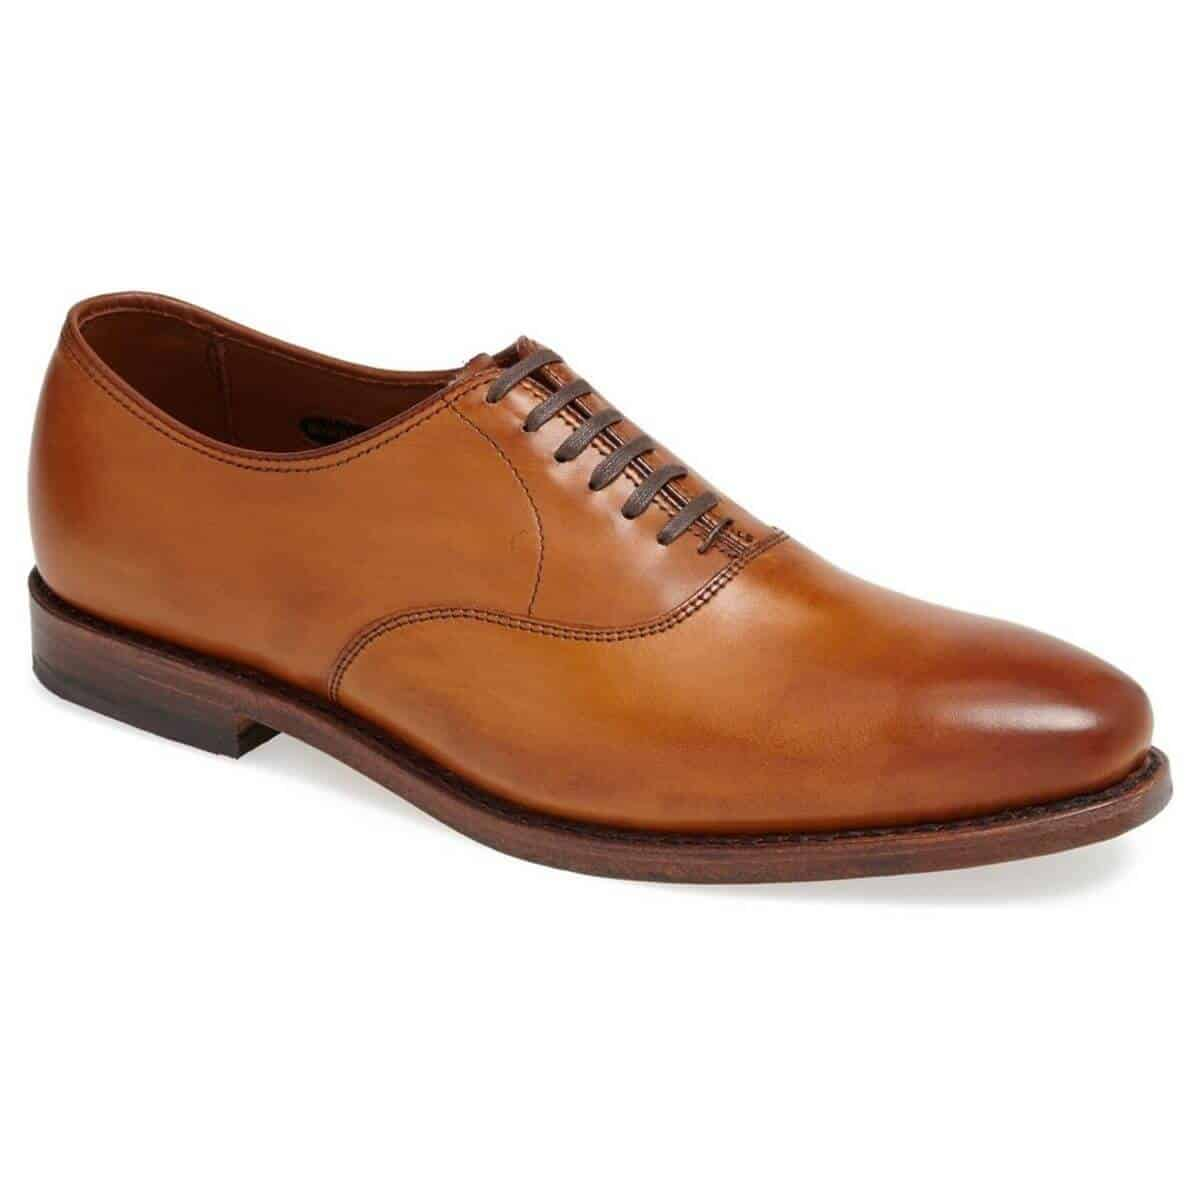 Brown plain toe Oxford shoe.